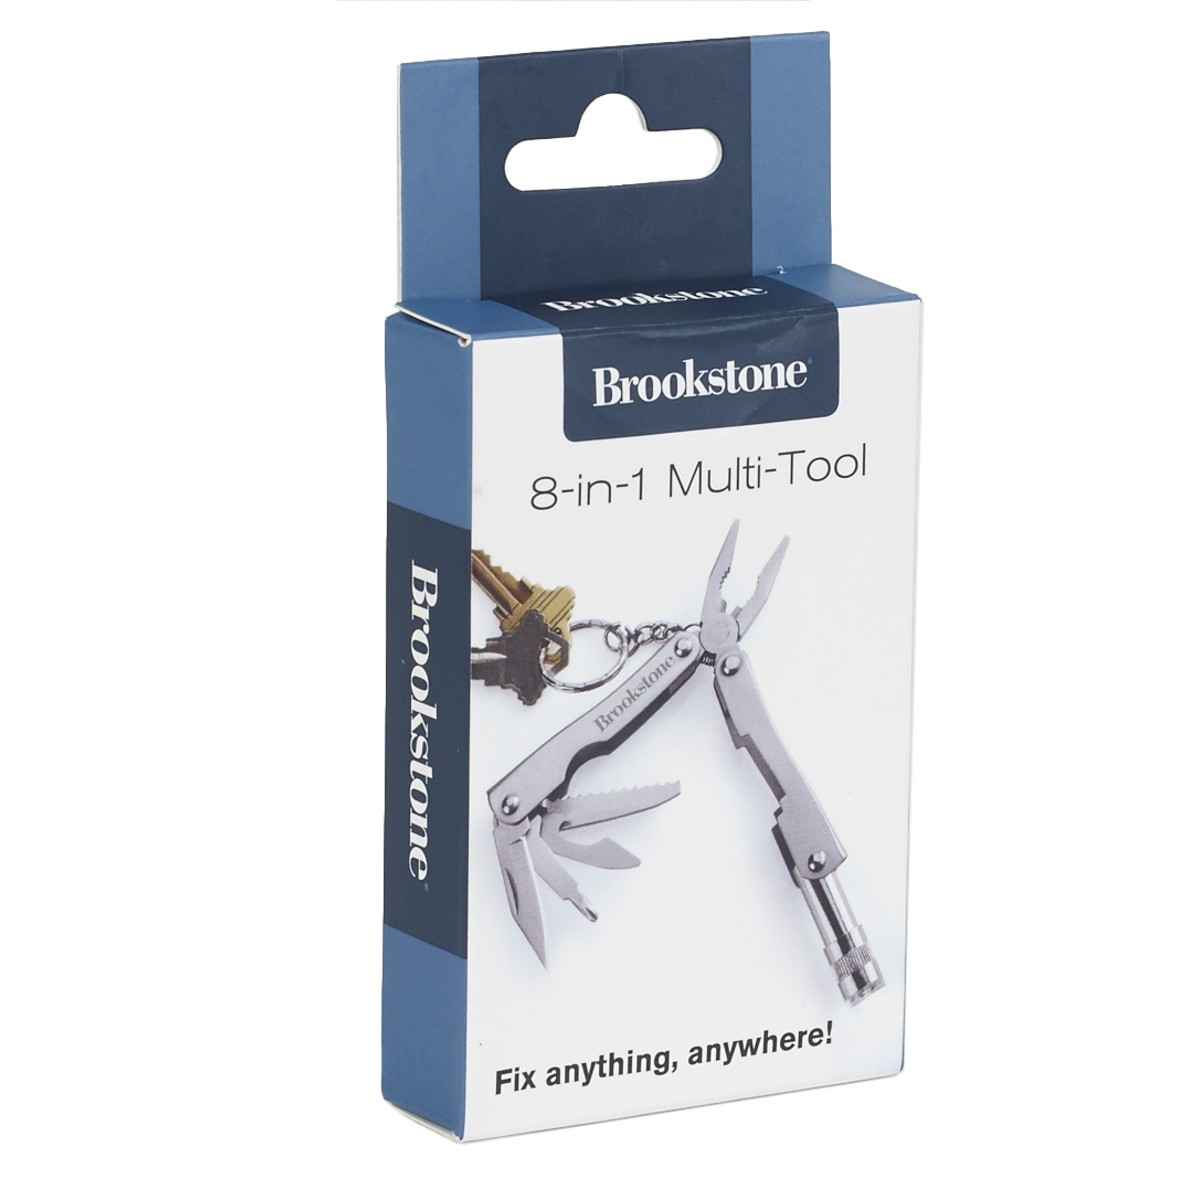 Brookstone 8-in-1 Multi-Tool